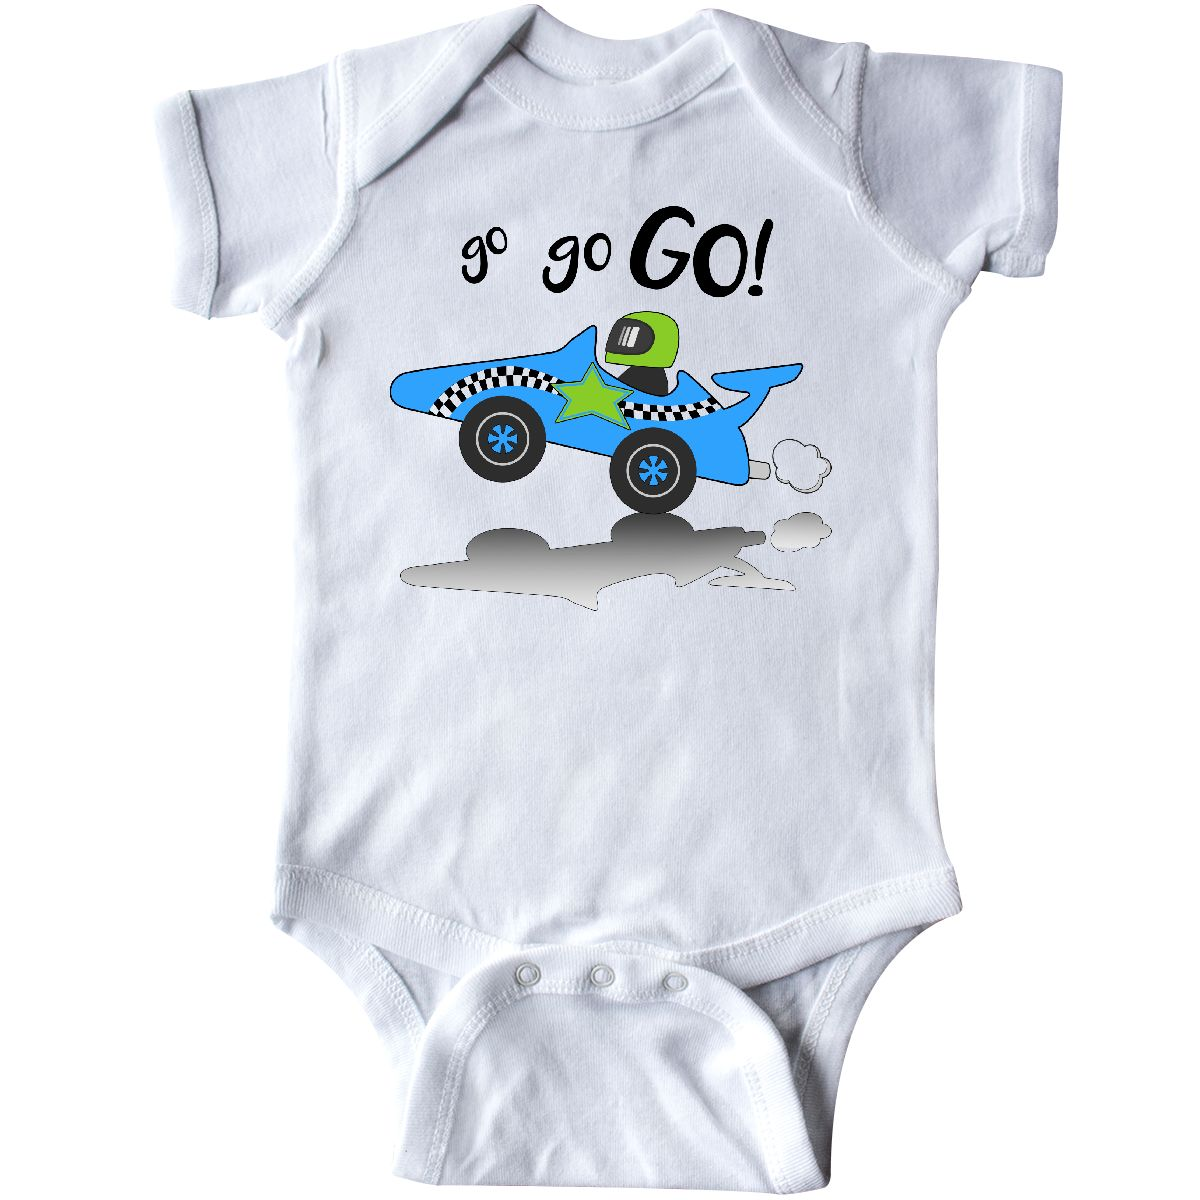 908df8c4ffc4 Inktastic Go Go Go! Blue Racing Car Infant Bodysuit Cars Kids Race ...